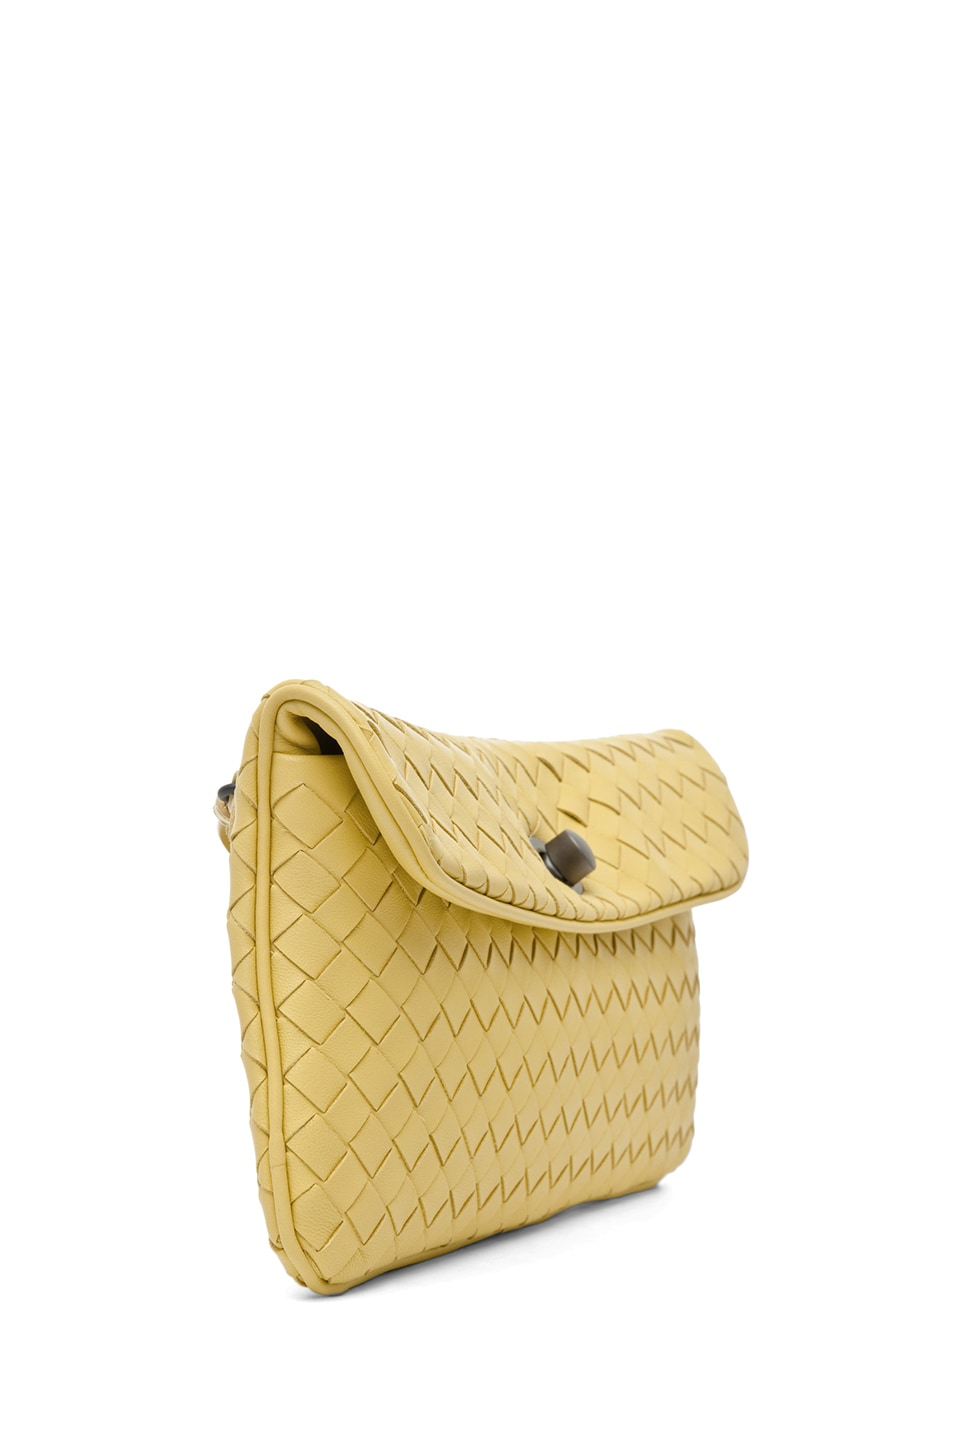 Image 3 of Bottega Veneta Crossbody Bag in Citrus Yellow